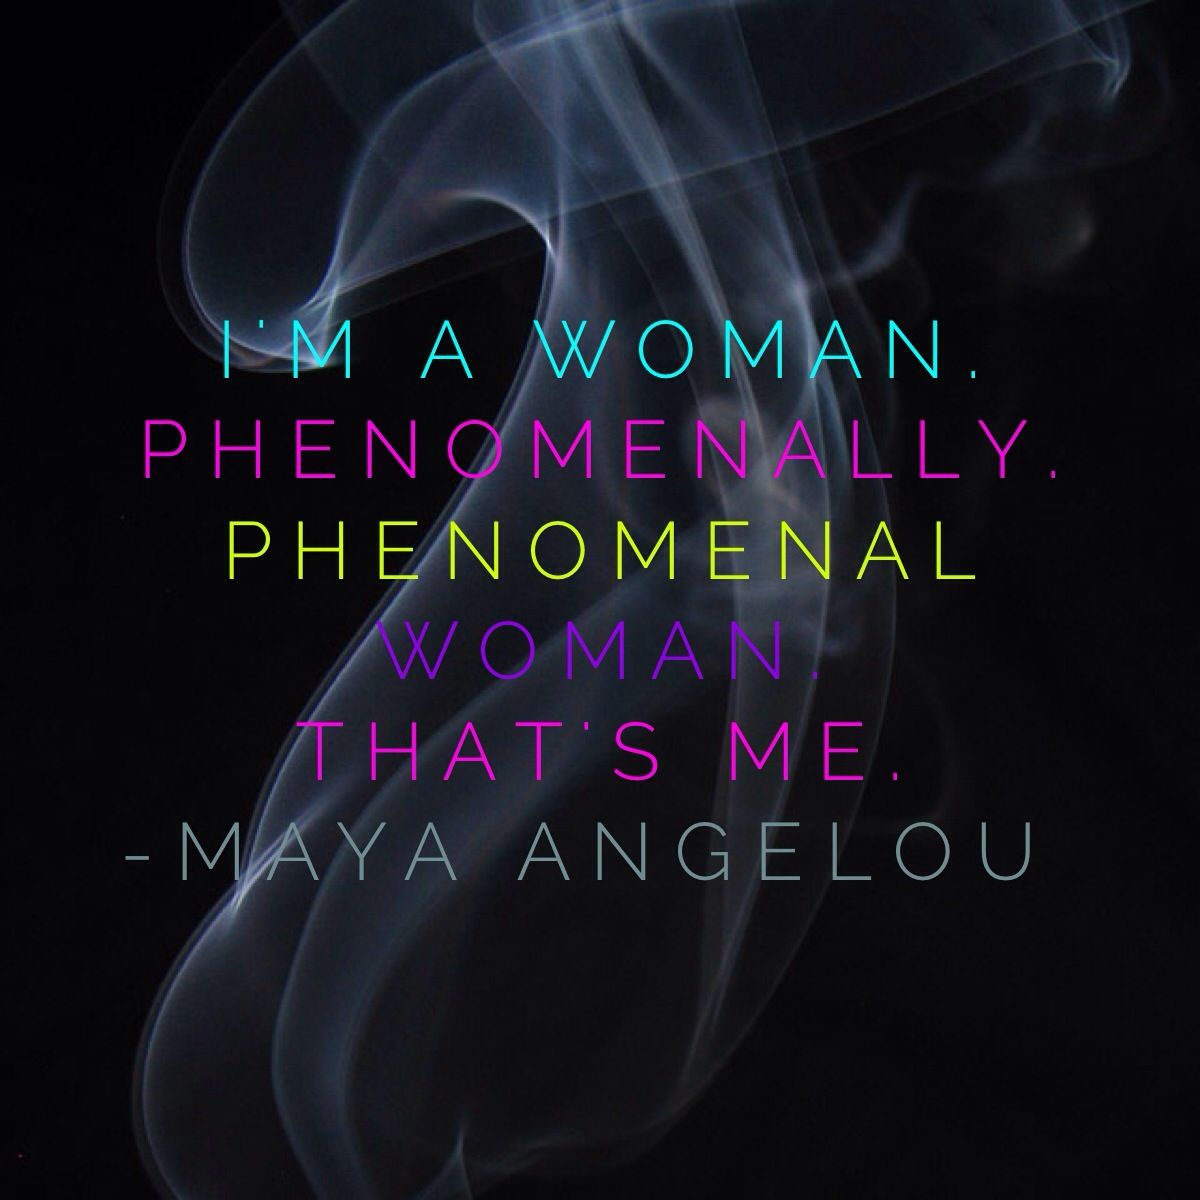 I M A Woman Phenomenally Phenomenal Woman That S Me Maya